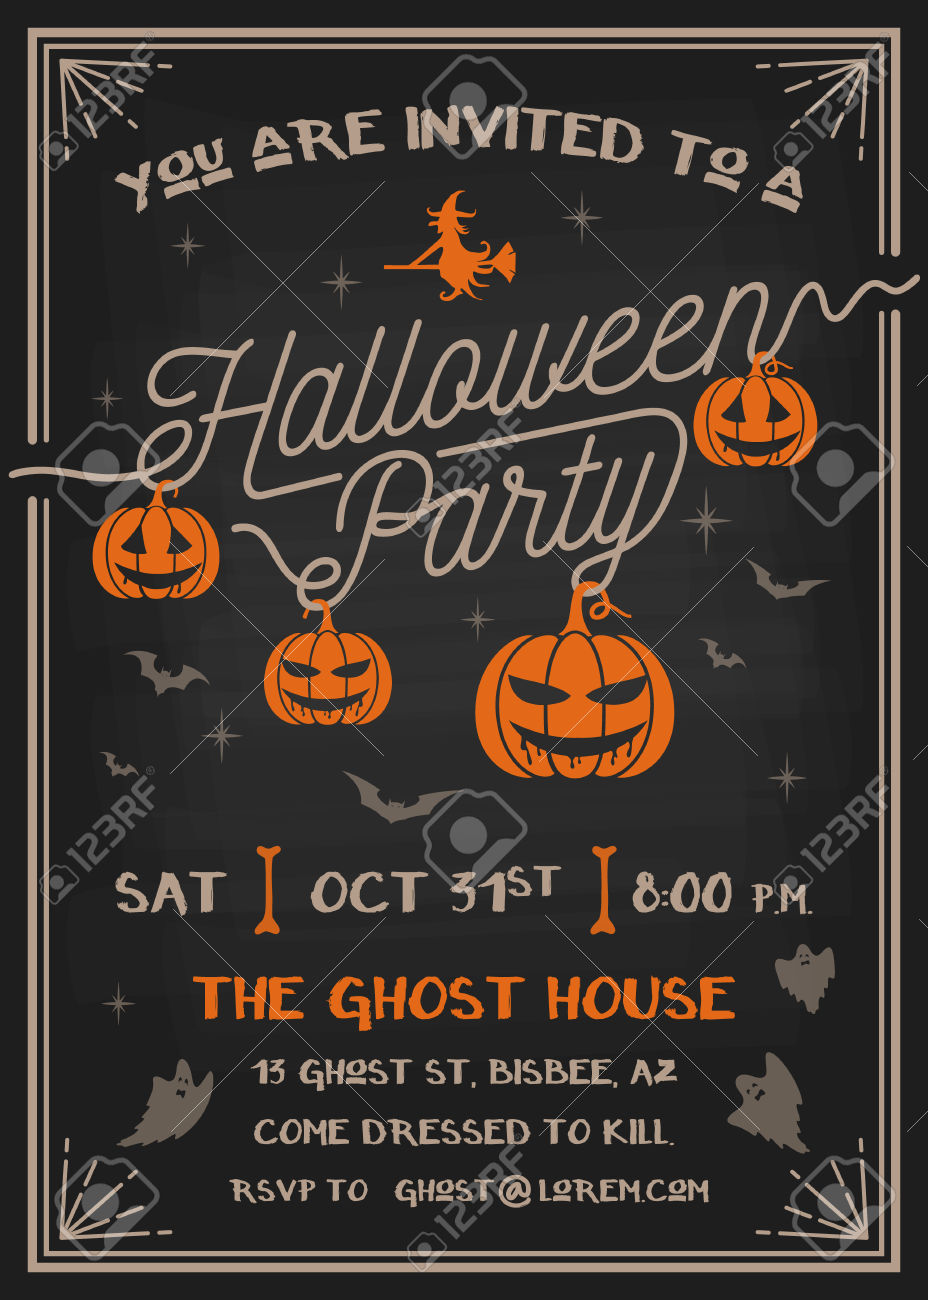 Halloween Party Invitations - Mickey Mouse Invitations Templates